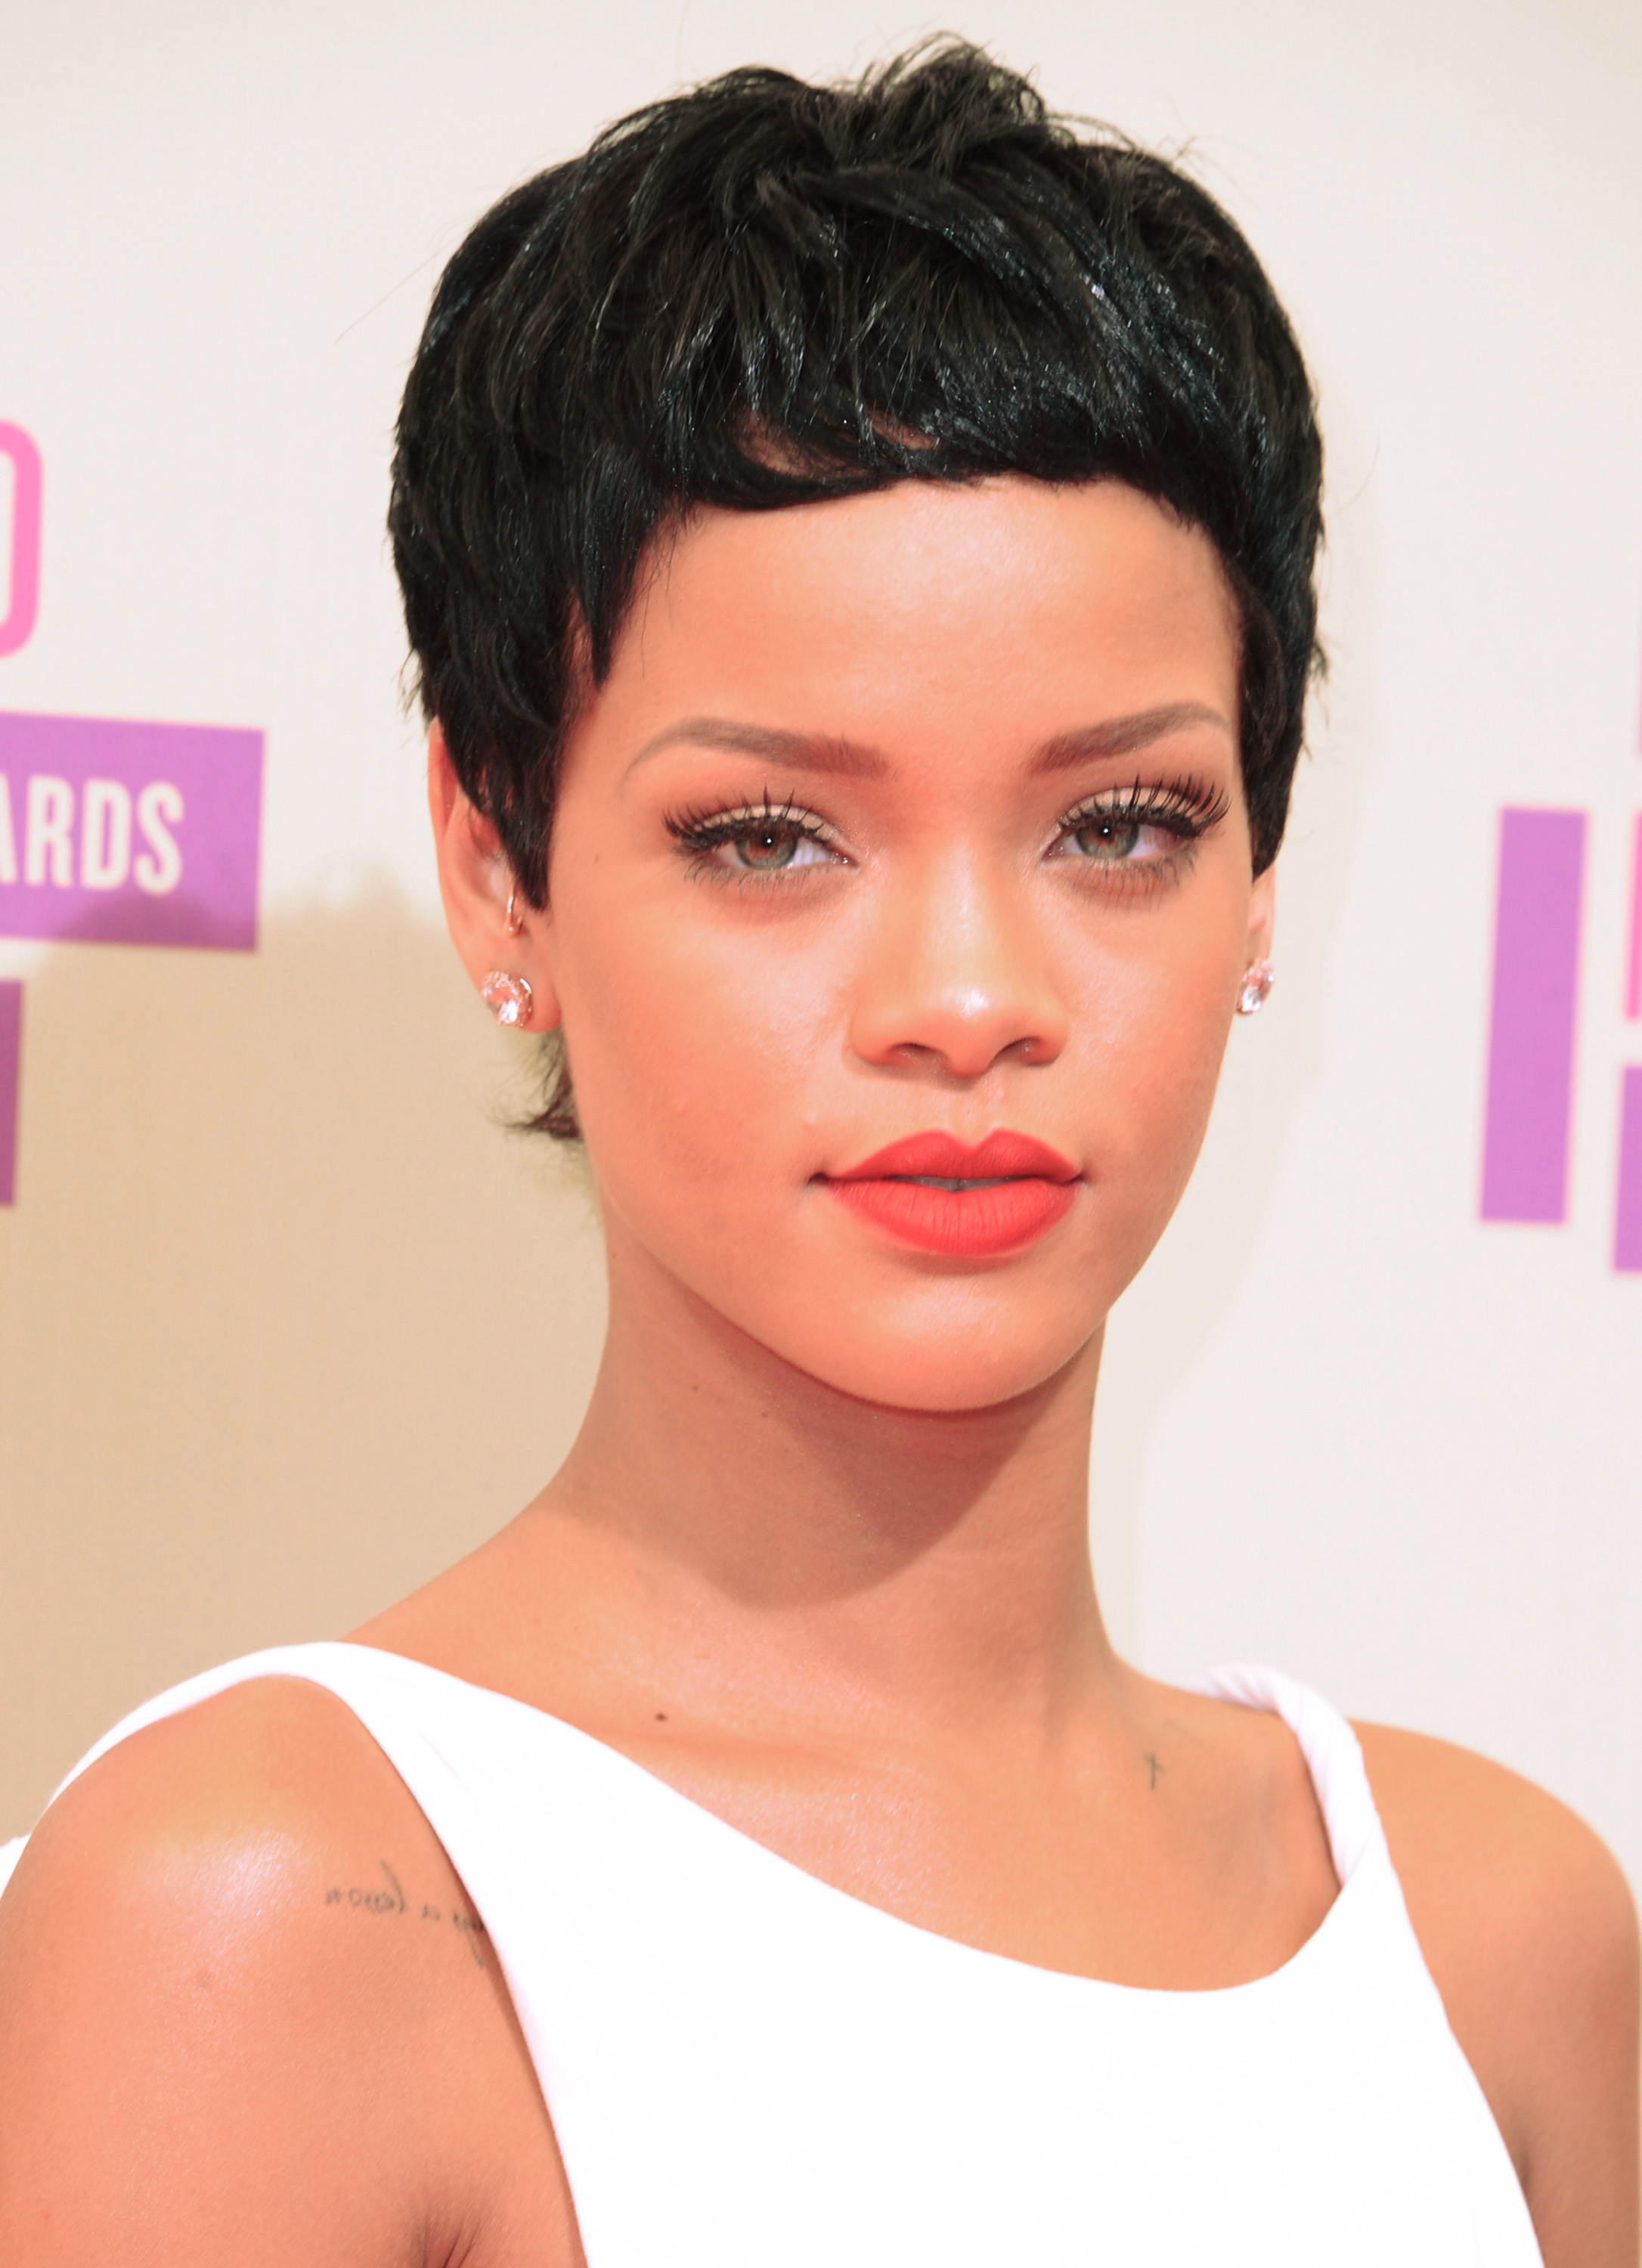 Strange 45 Black Hairstyles For Short Hair Short Haircuts For Black Women Hairstyle Inspiration Daily Dogsangcom